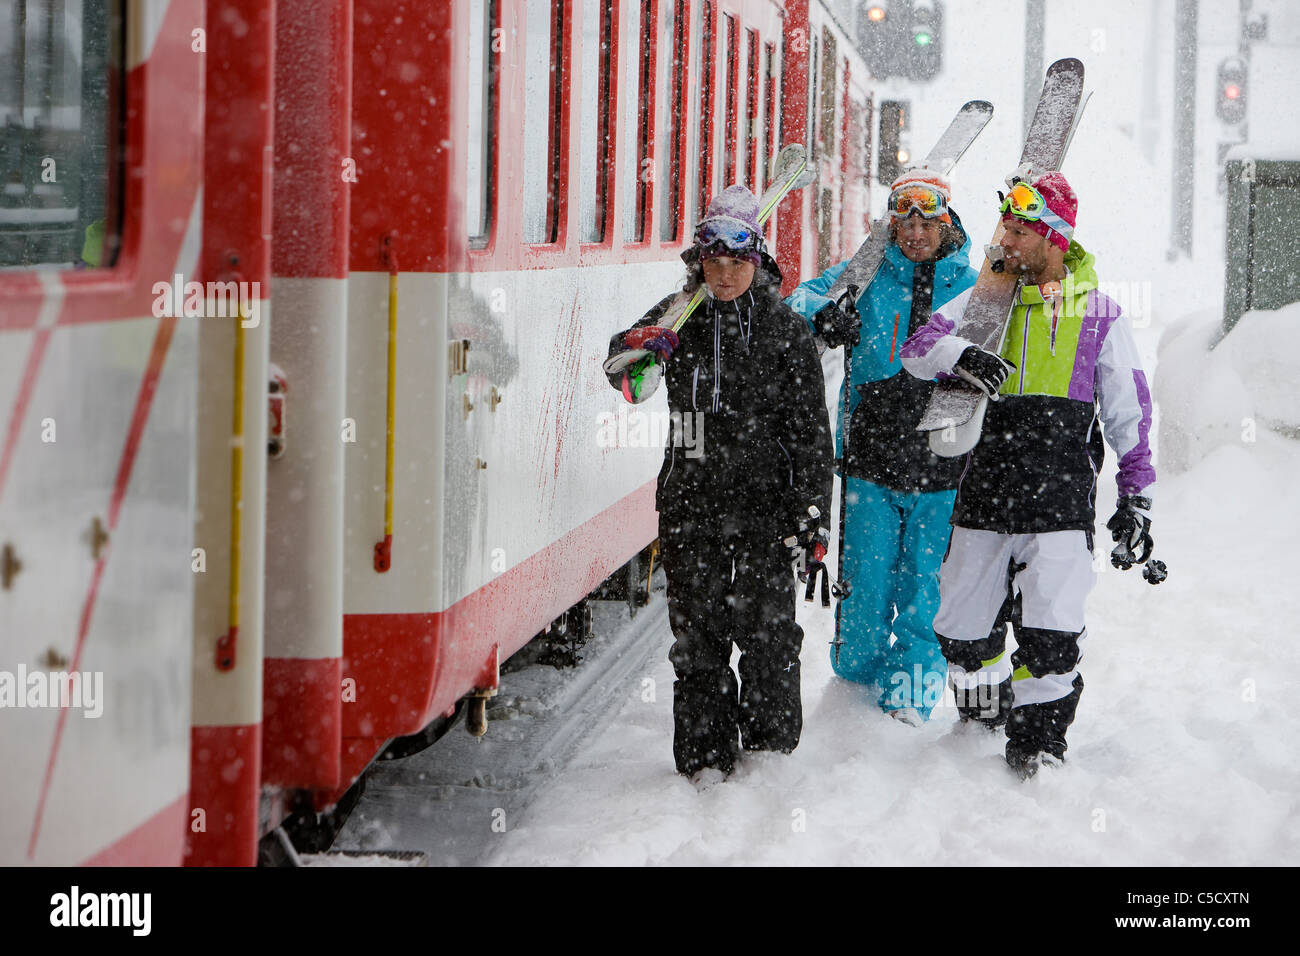 Skiers with skis on shoulders by the train on railway station platform on a snowy day at Switzerland - Stock Image